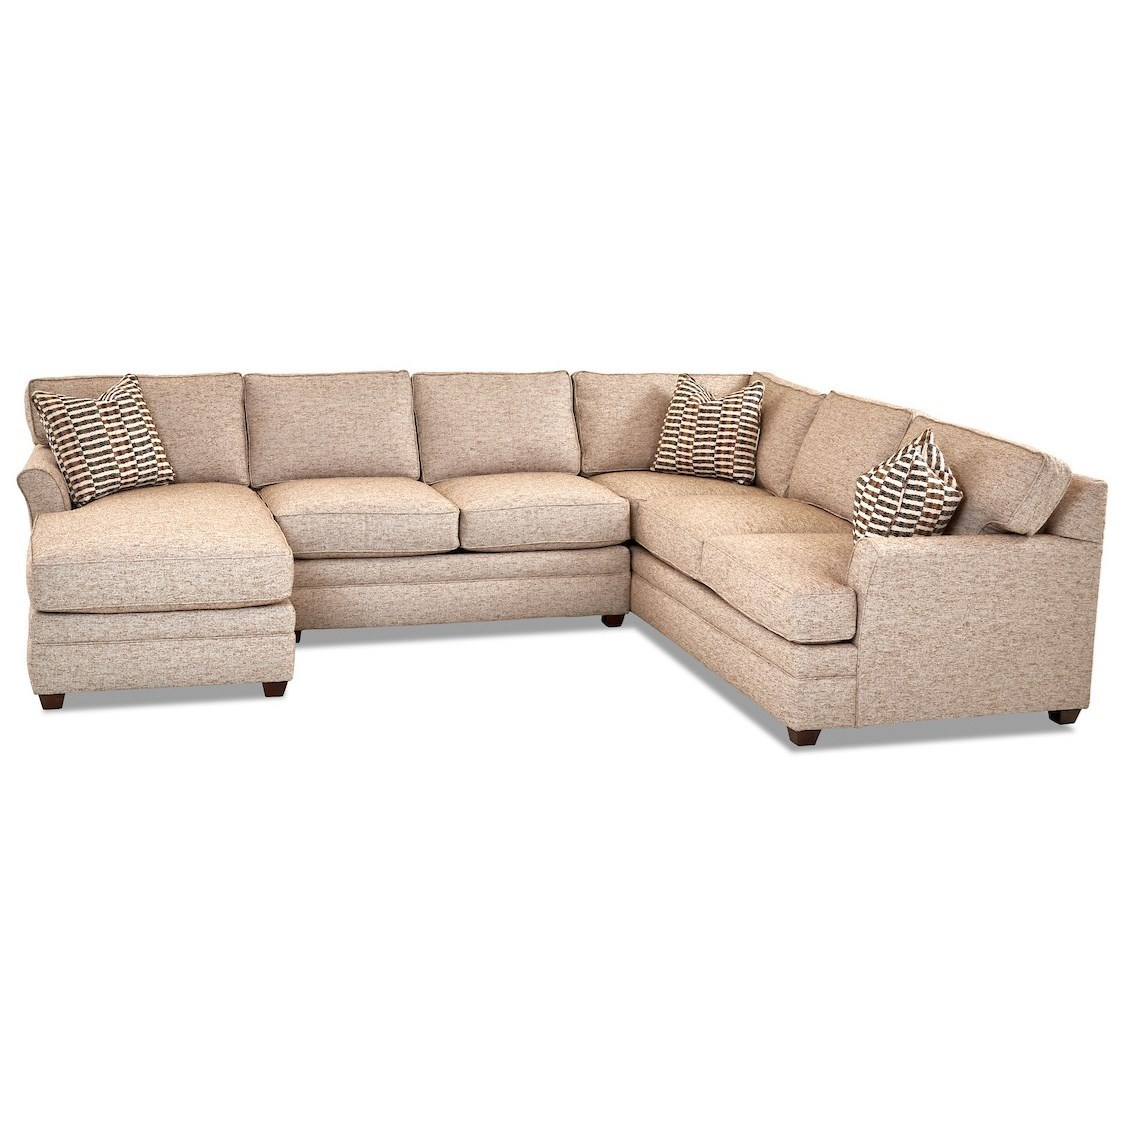 Transitional 3-Piece Sectional Sofa with LAF Chaise